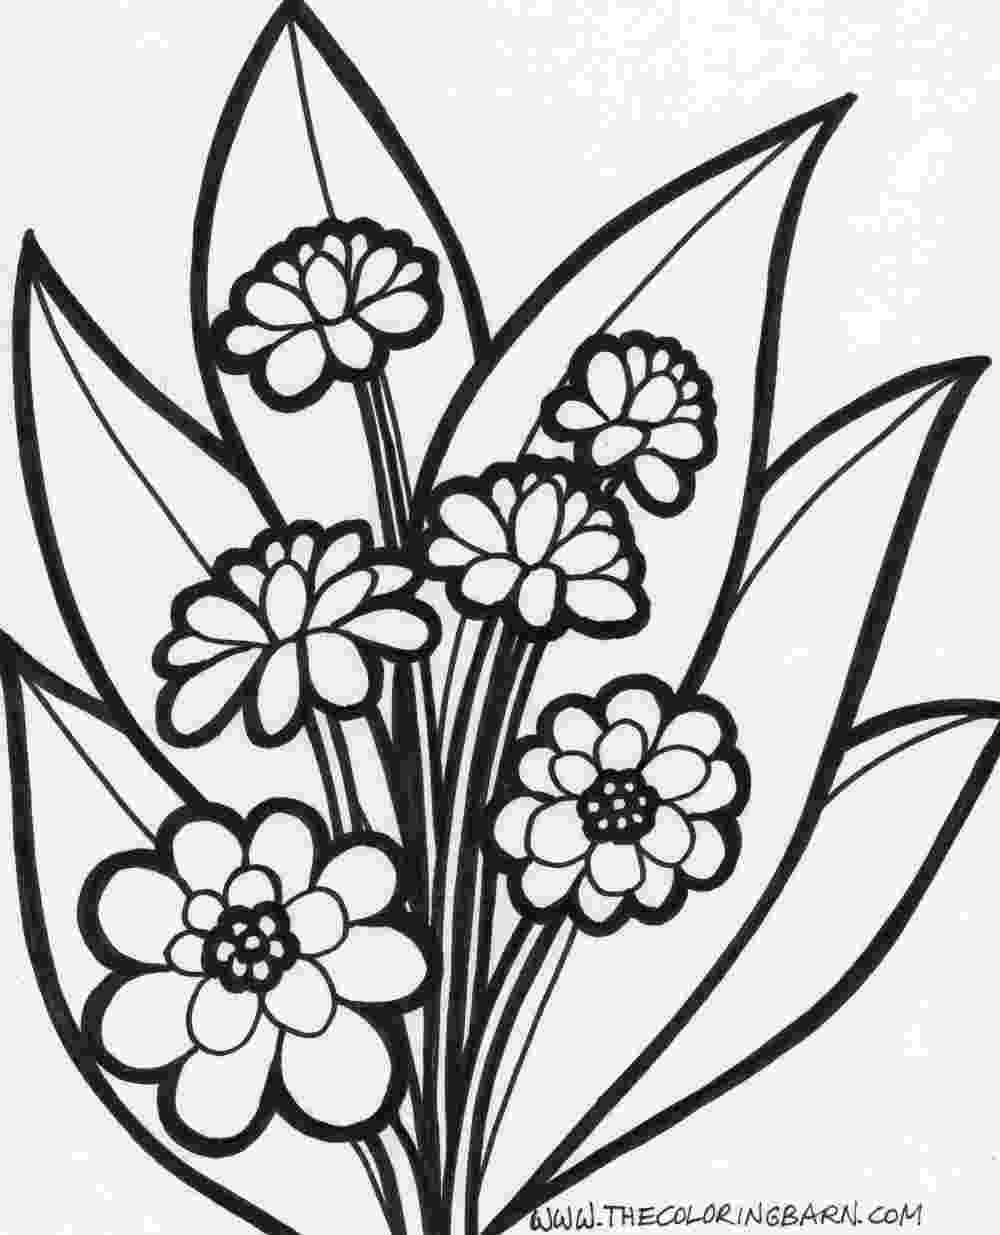 flowers coloring pages printable real life flower coloring pages best coloring pages flowers printable pages coloring